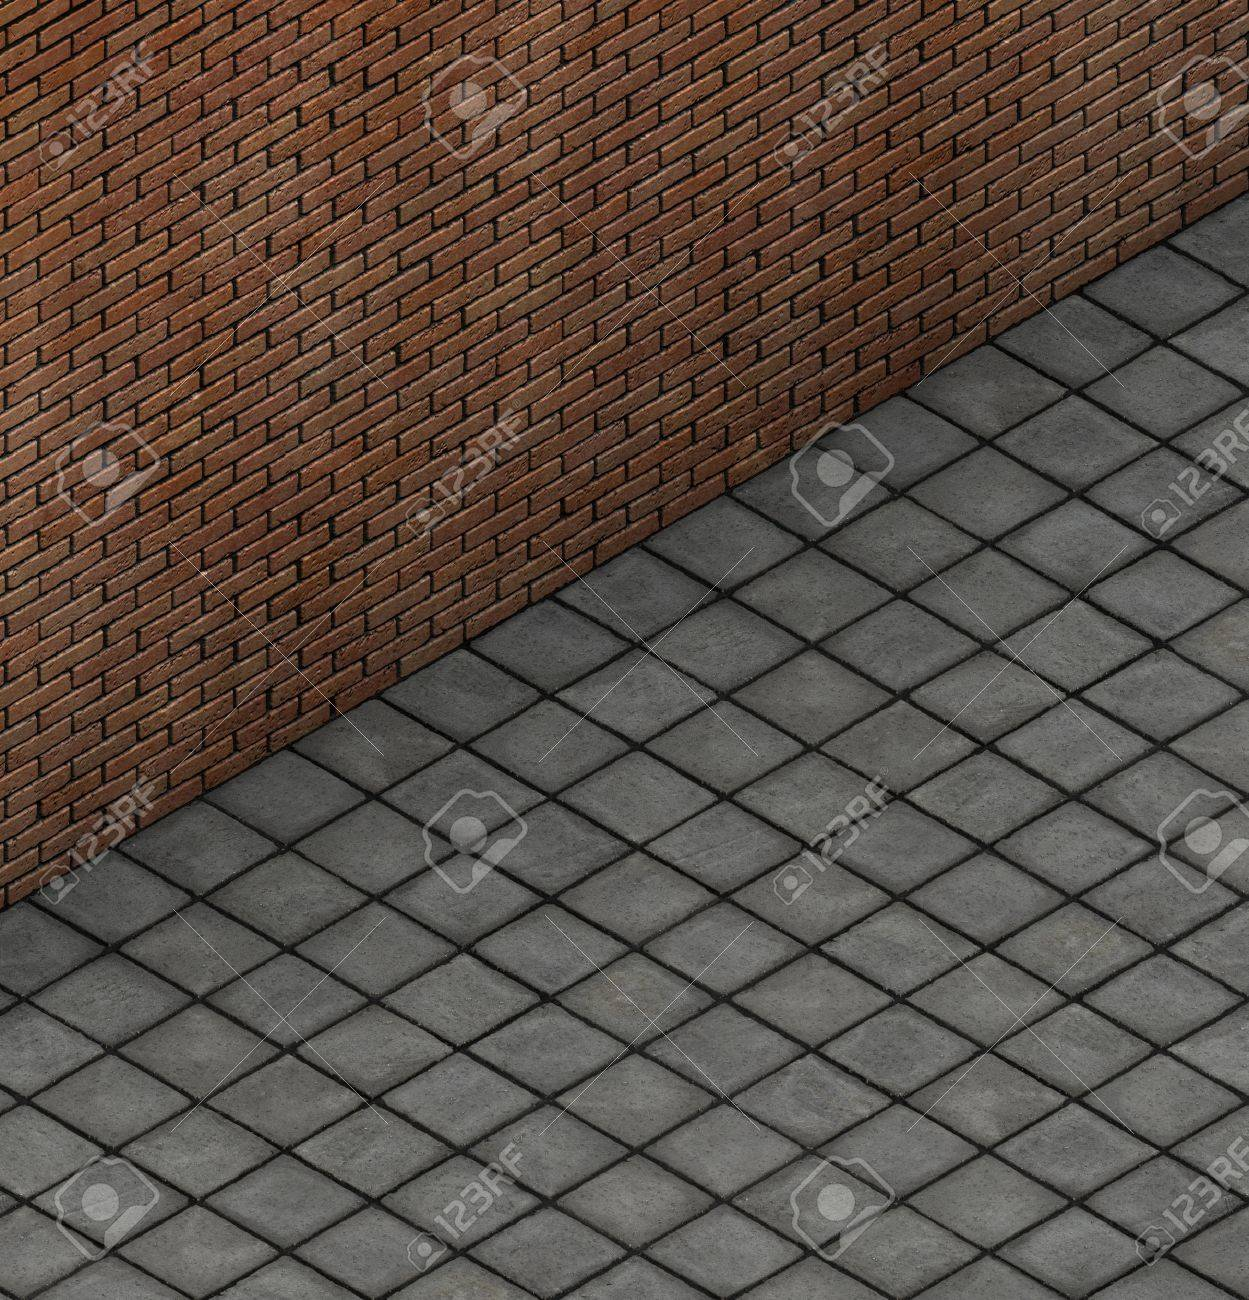 Isometric 3d Render Top View Of Brick Wall With Tile Pavement Stock Photo